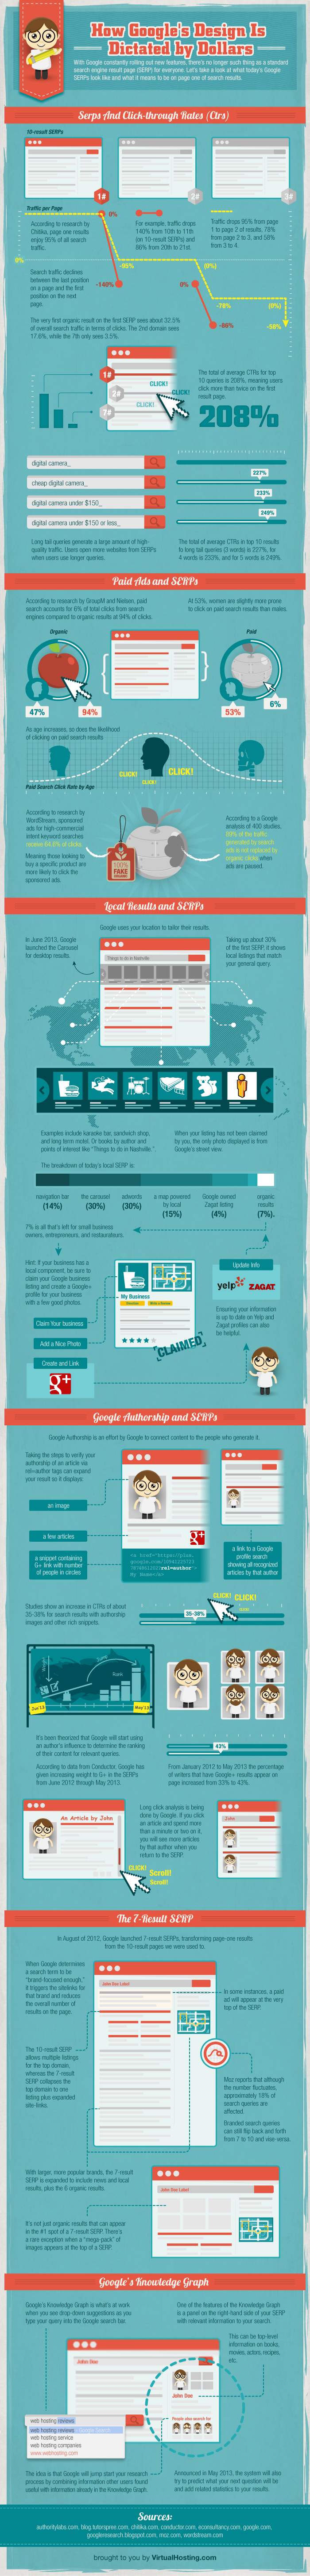 How Google's Design is Dictated by Dollars [Infographic] by Virtual Hosting